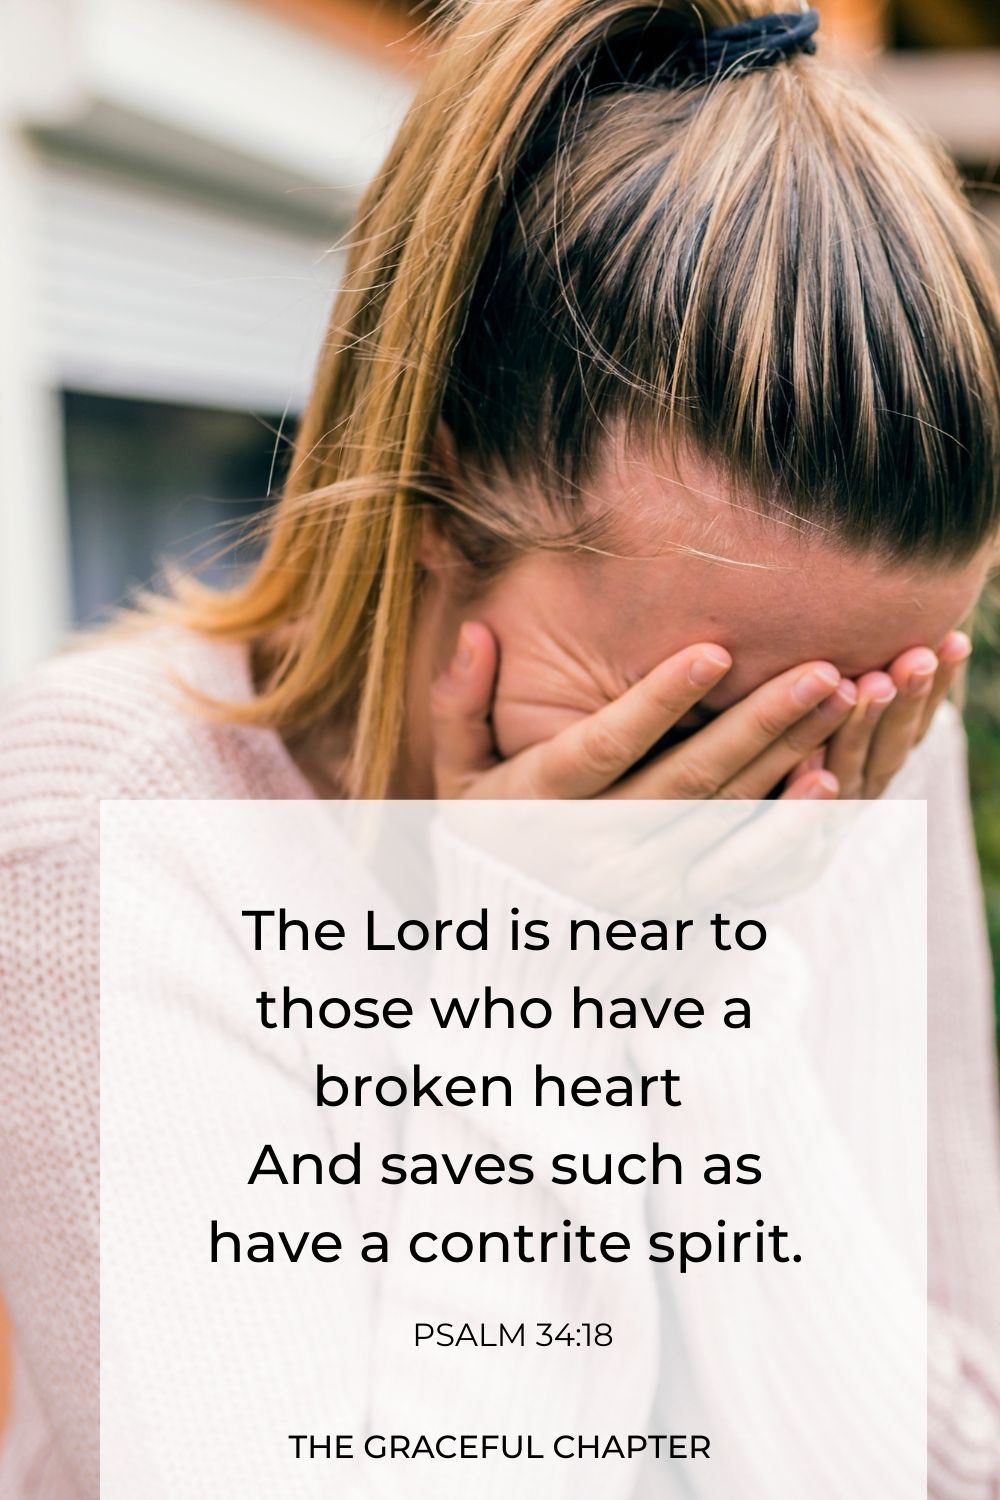 The Lord is near to those who have a broken heart, And saves such as have a contrite spirit. Psalm 34:18